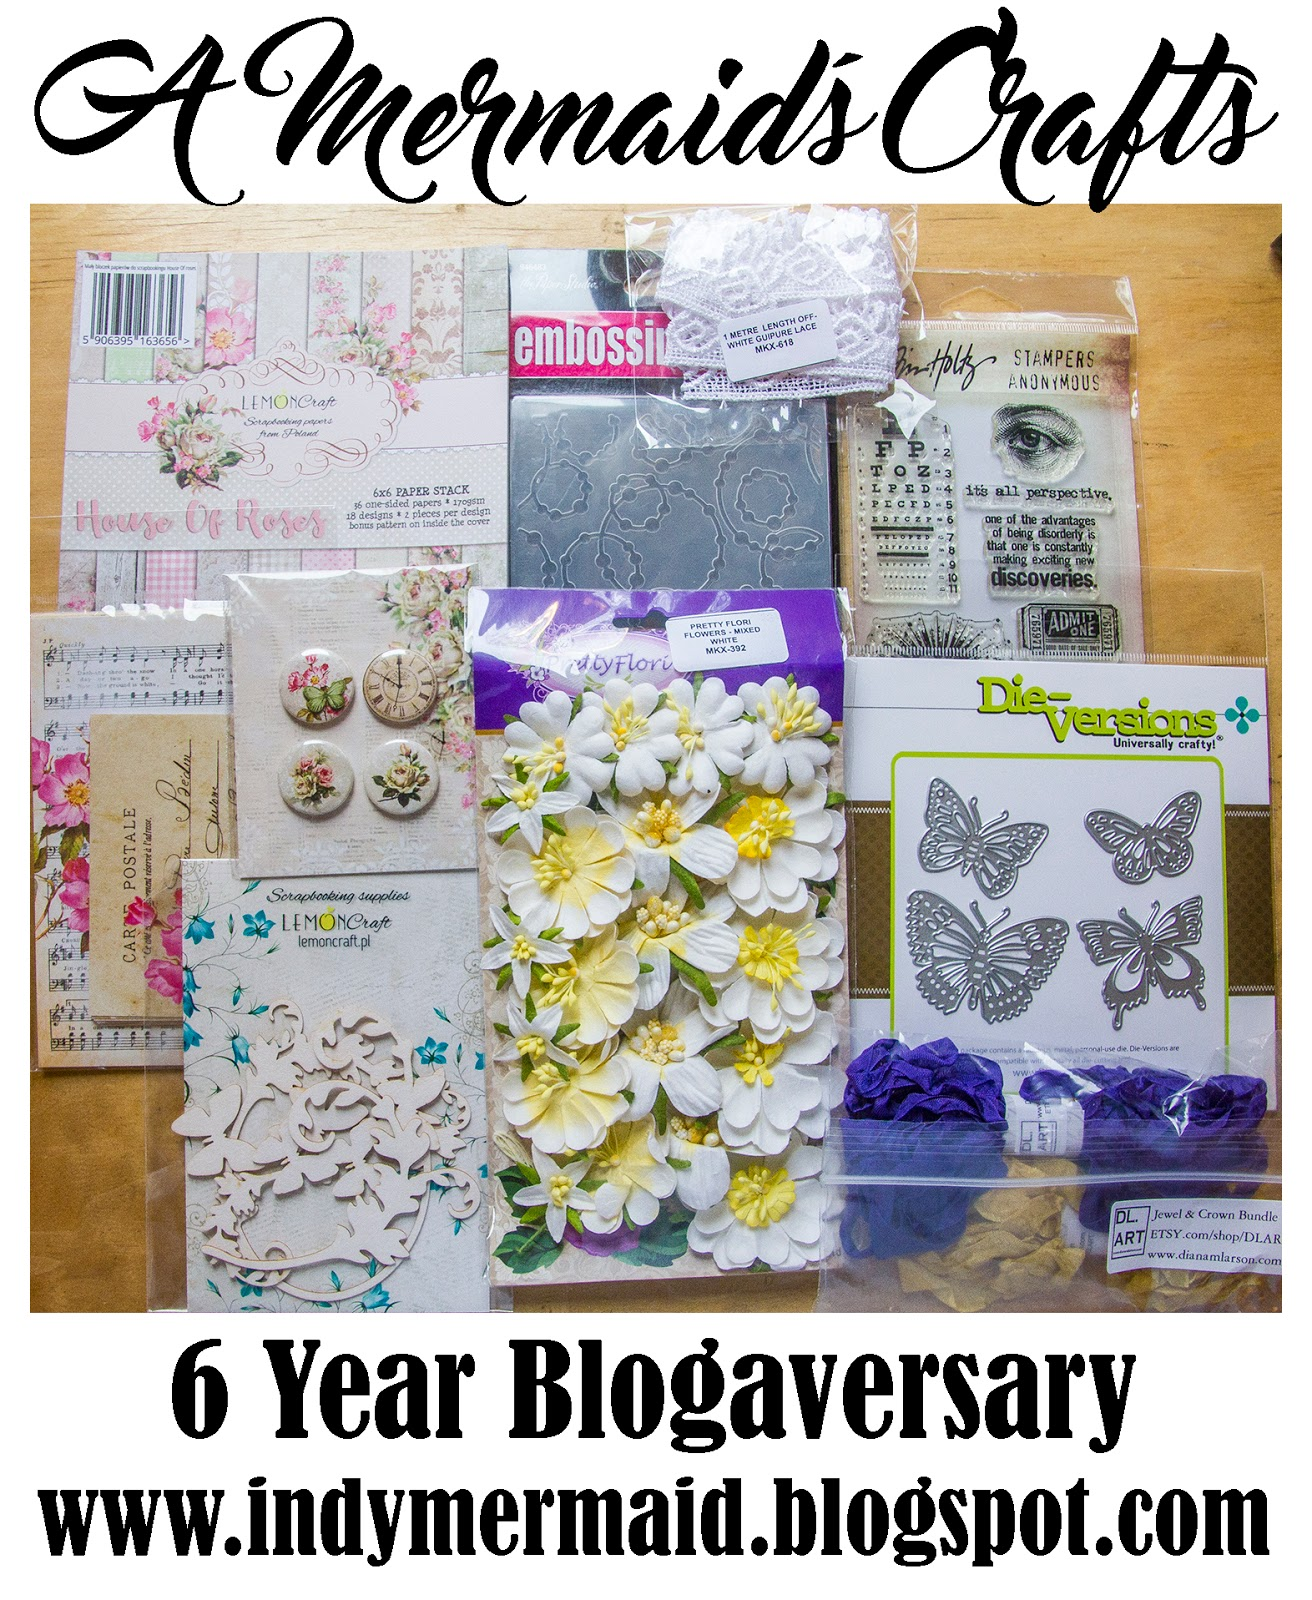 Lisa's 6th Blogaversary Giveaway